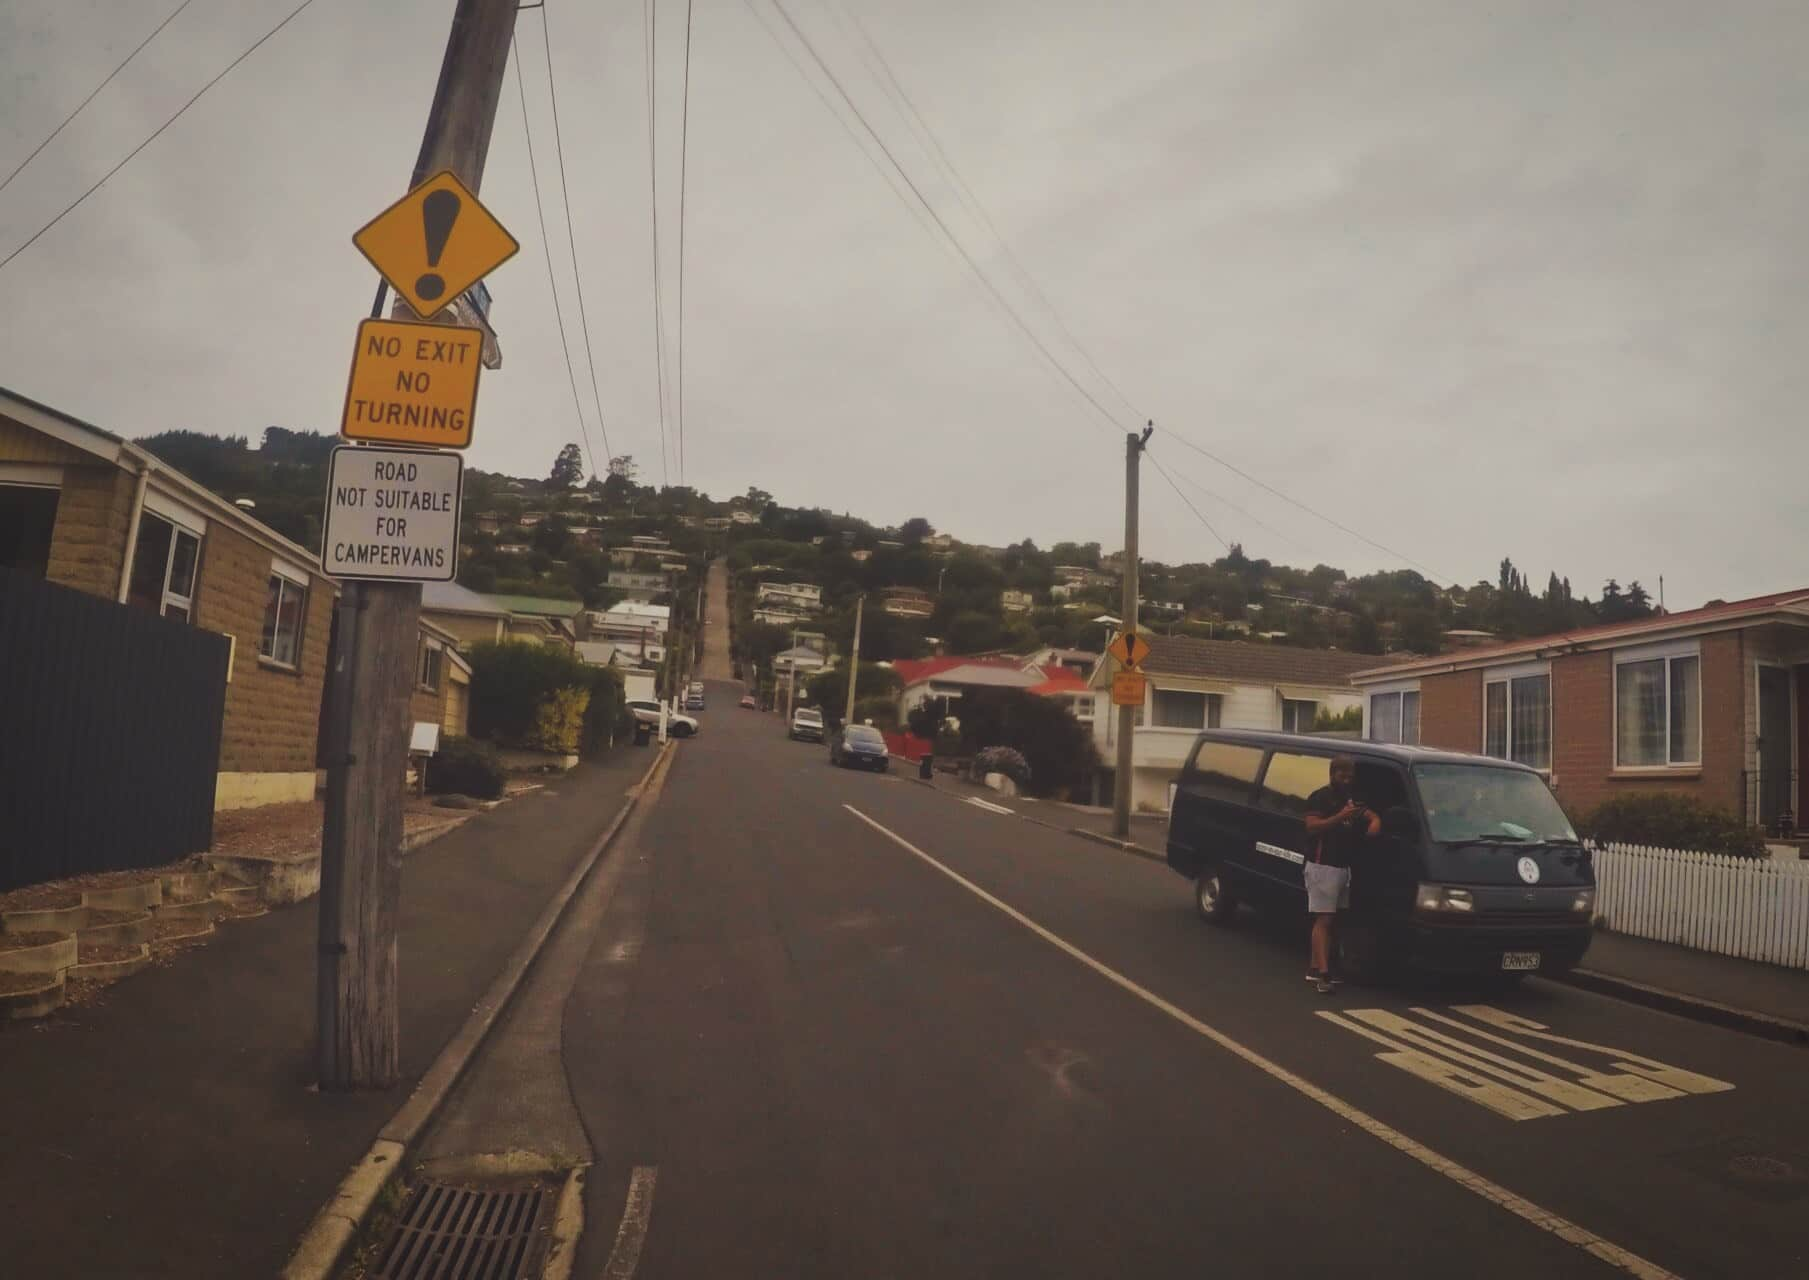 dunedin-steepest-street-in-the-world